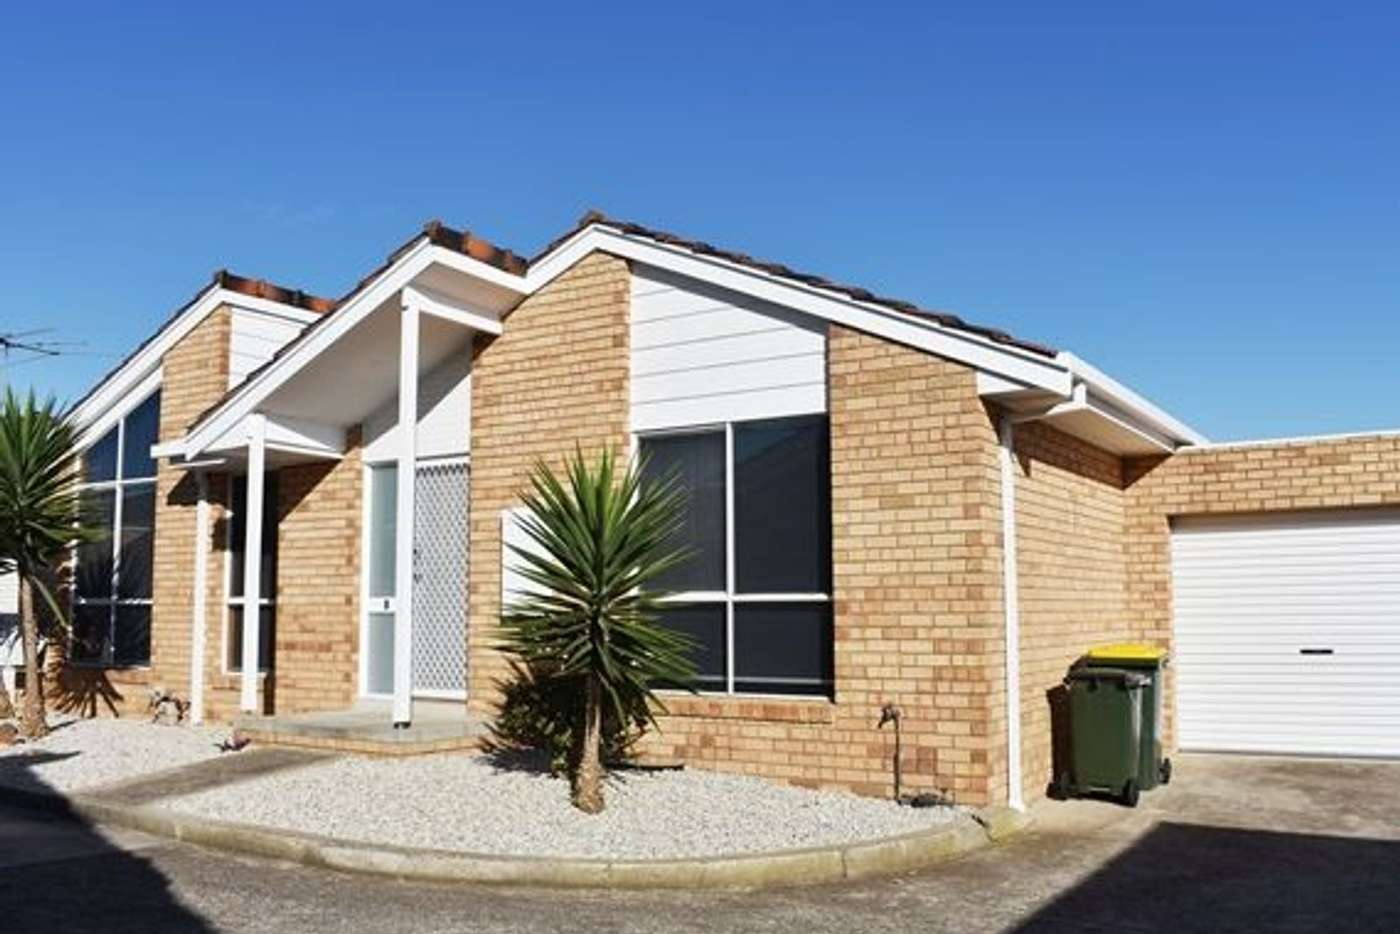 Main view of Homely unit listing, 1/23 James Street, St Albans VIC 3021